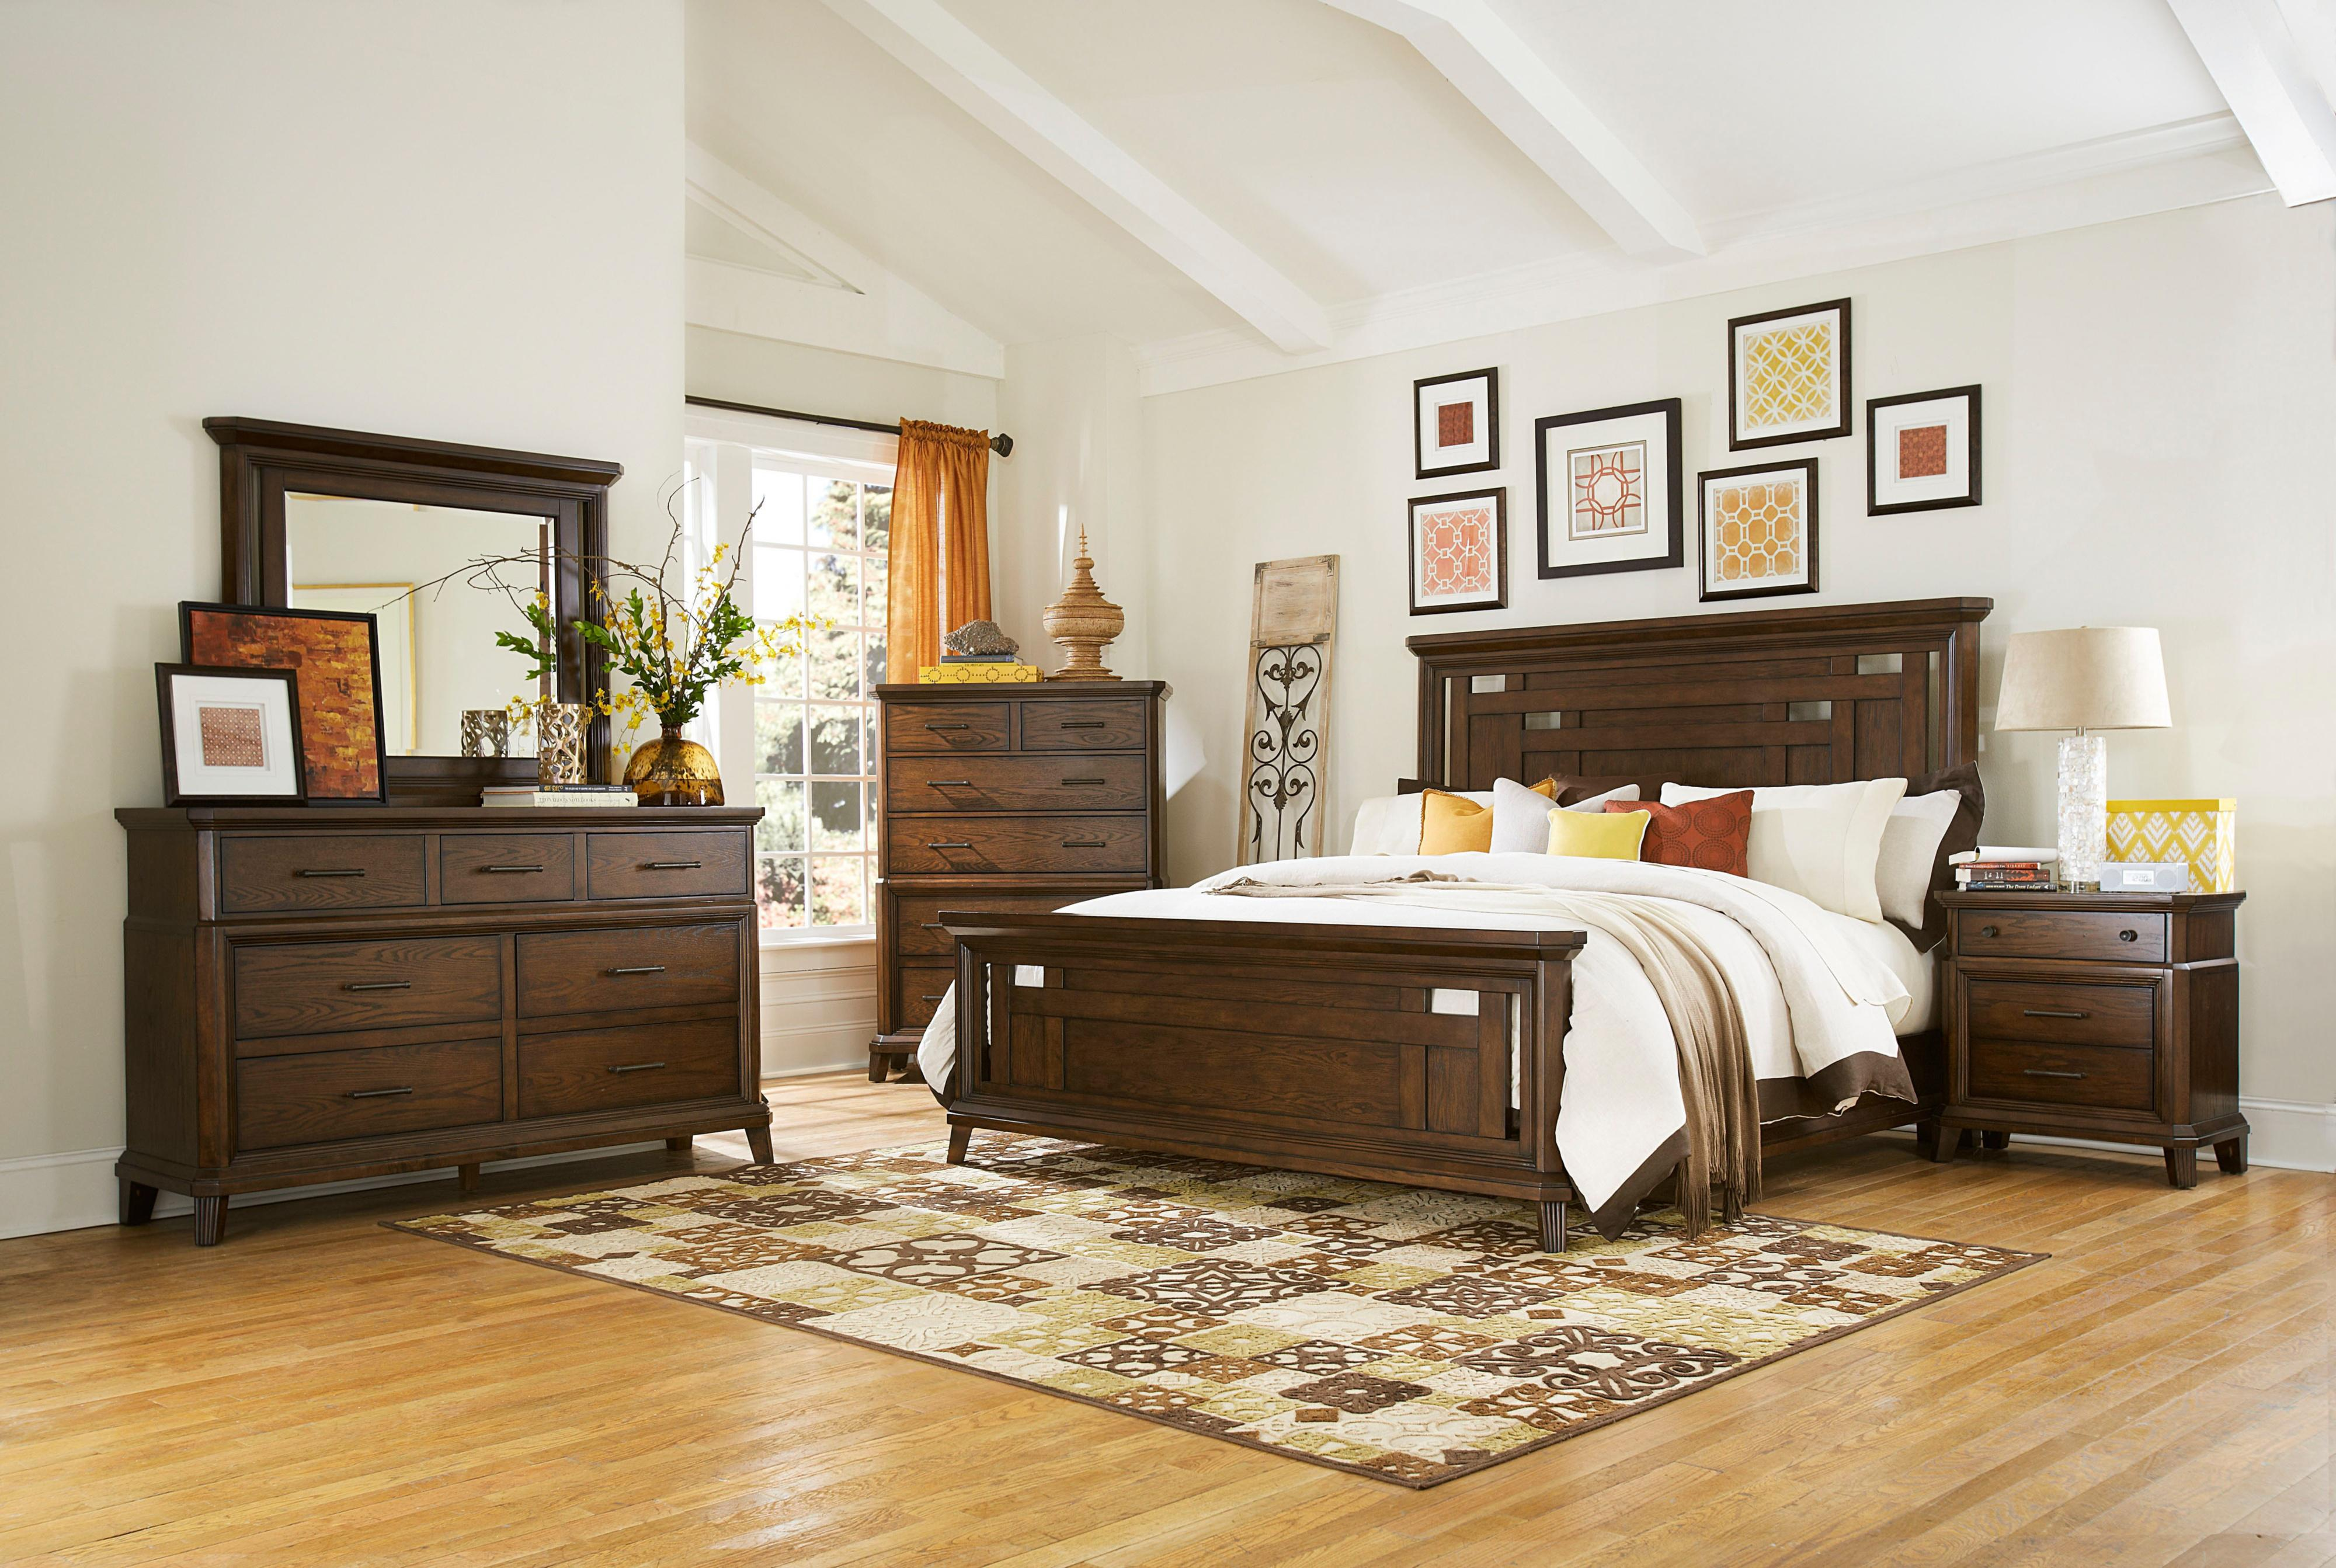 Broyhill Furniture Estes Park Queen Bedroom Group - Item Number: 4364 Q Bedroom Group 2